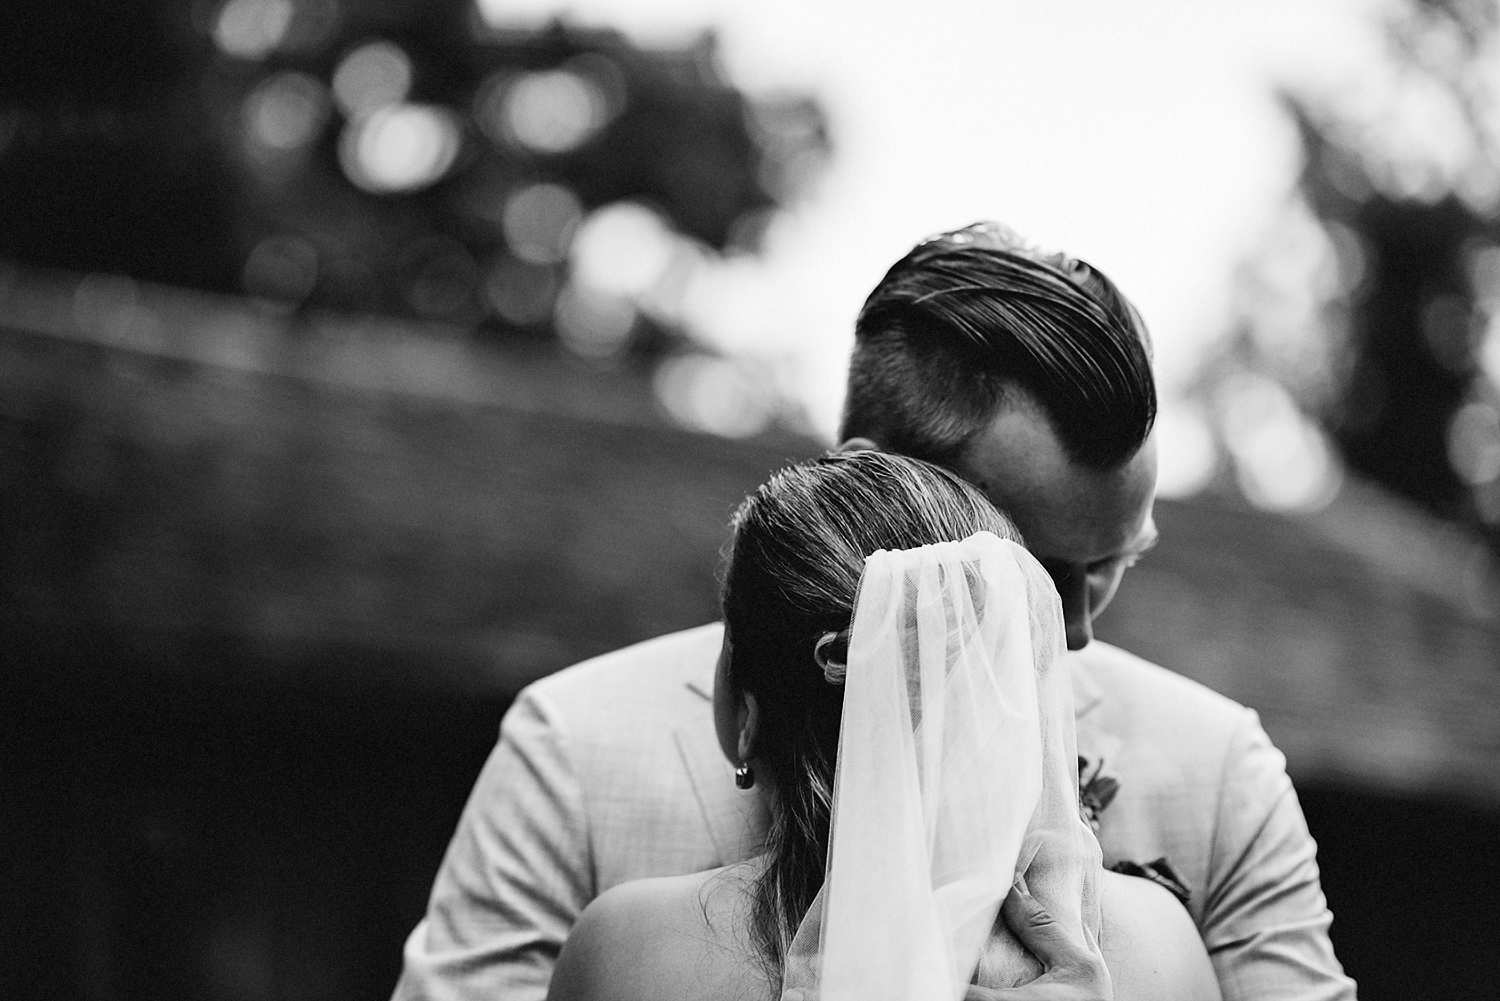 Toronto Ontario wedding photographer 3B Photography at Black Creek Pioneer Village portrait of bride and groom just married and happy